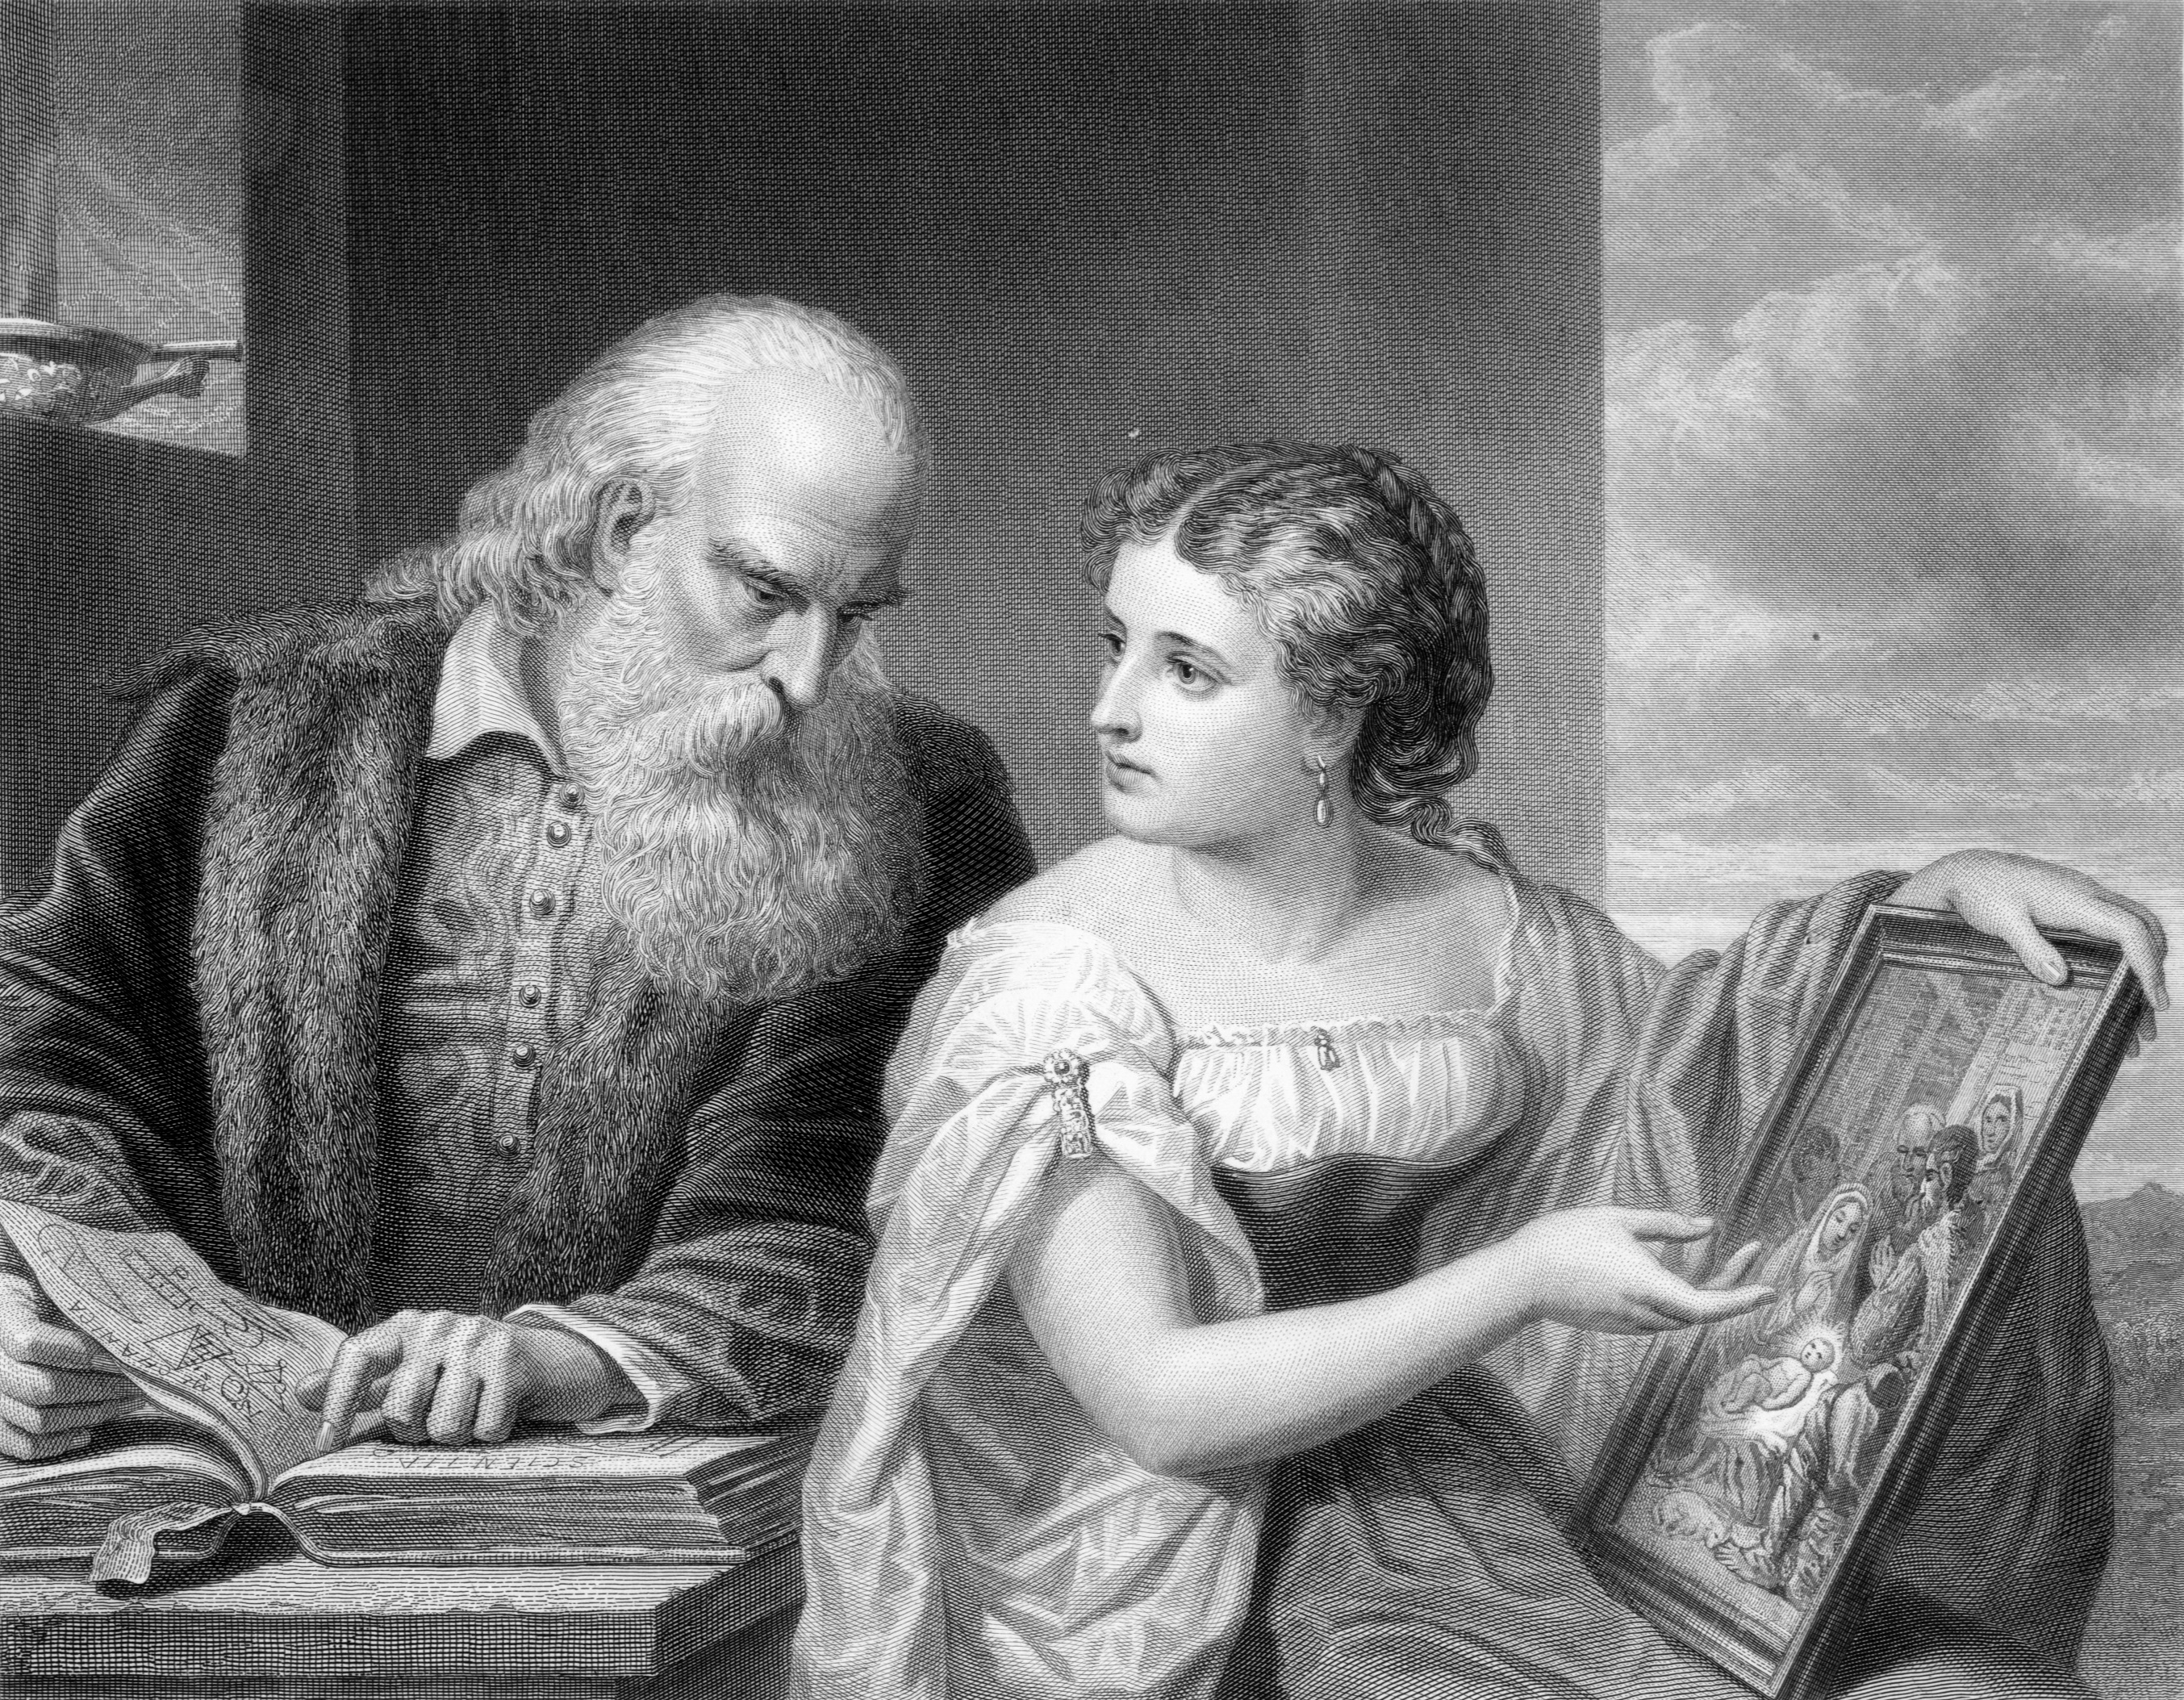 Engraving depicting a young woman representing religion debating with an old man representing science.